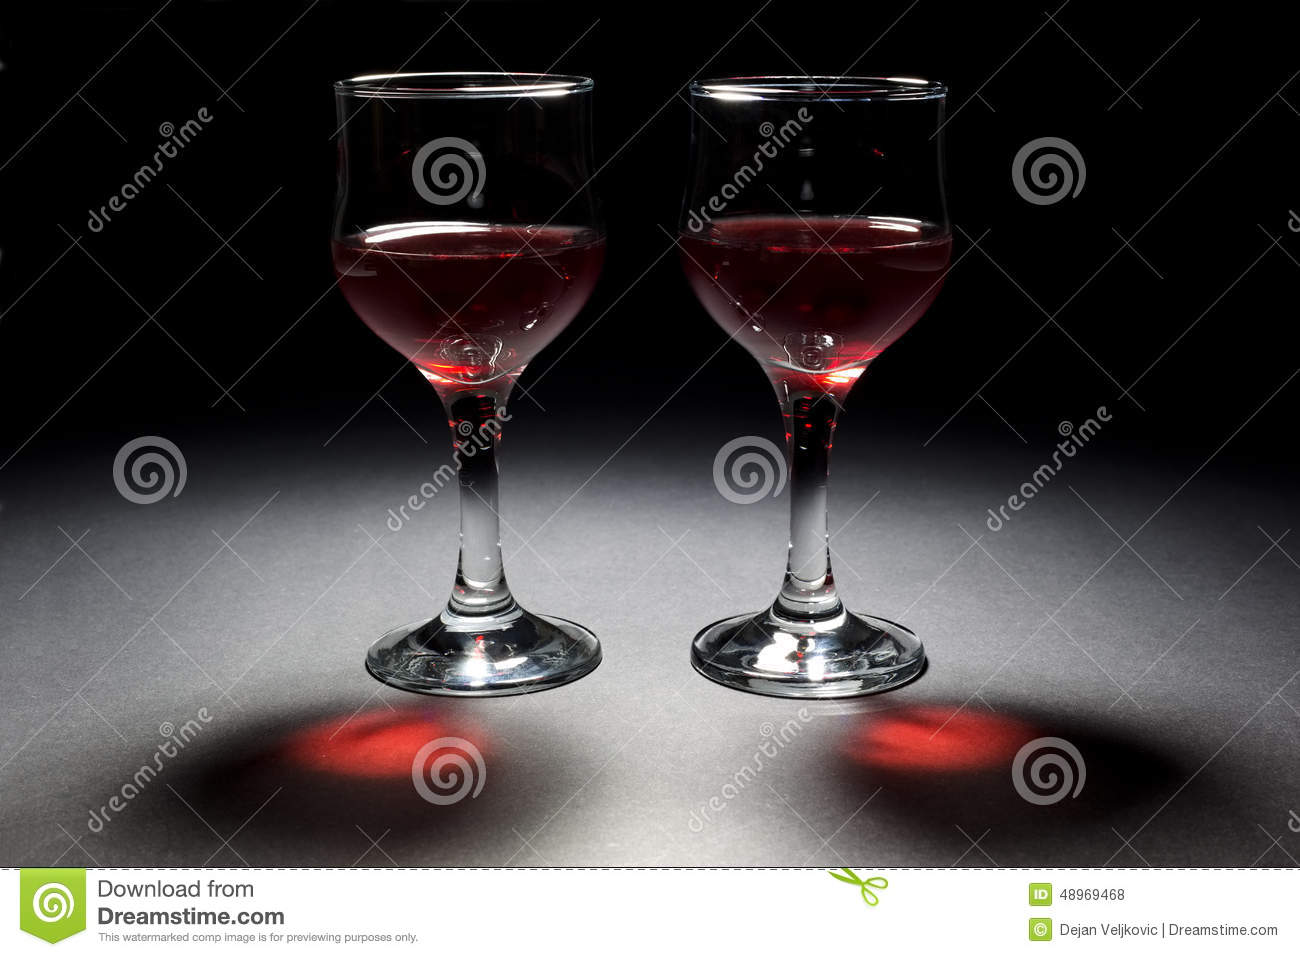 Two Glasses Of Red Wine And Their Interesting Reflection